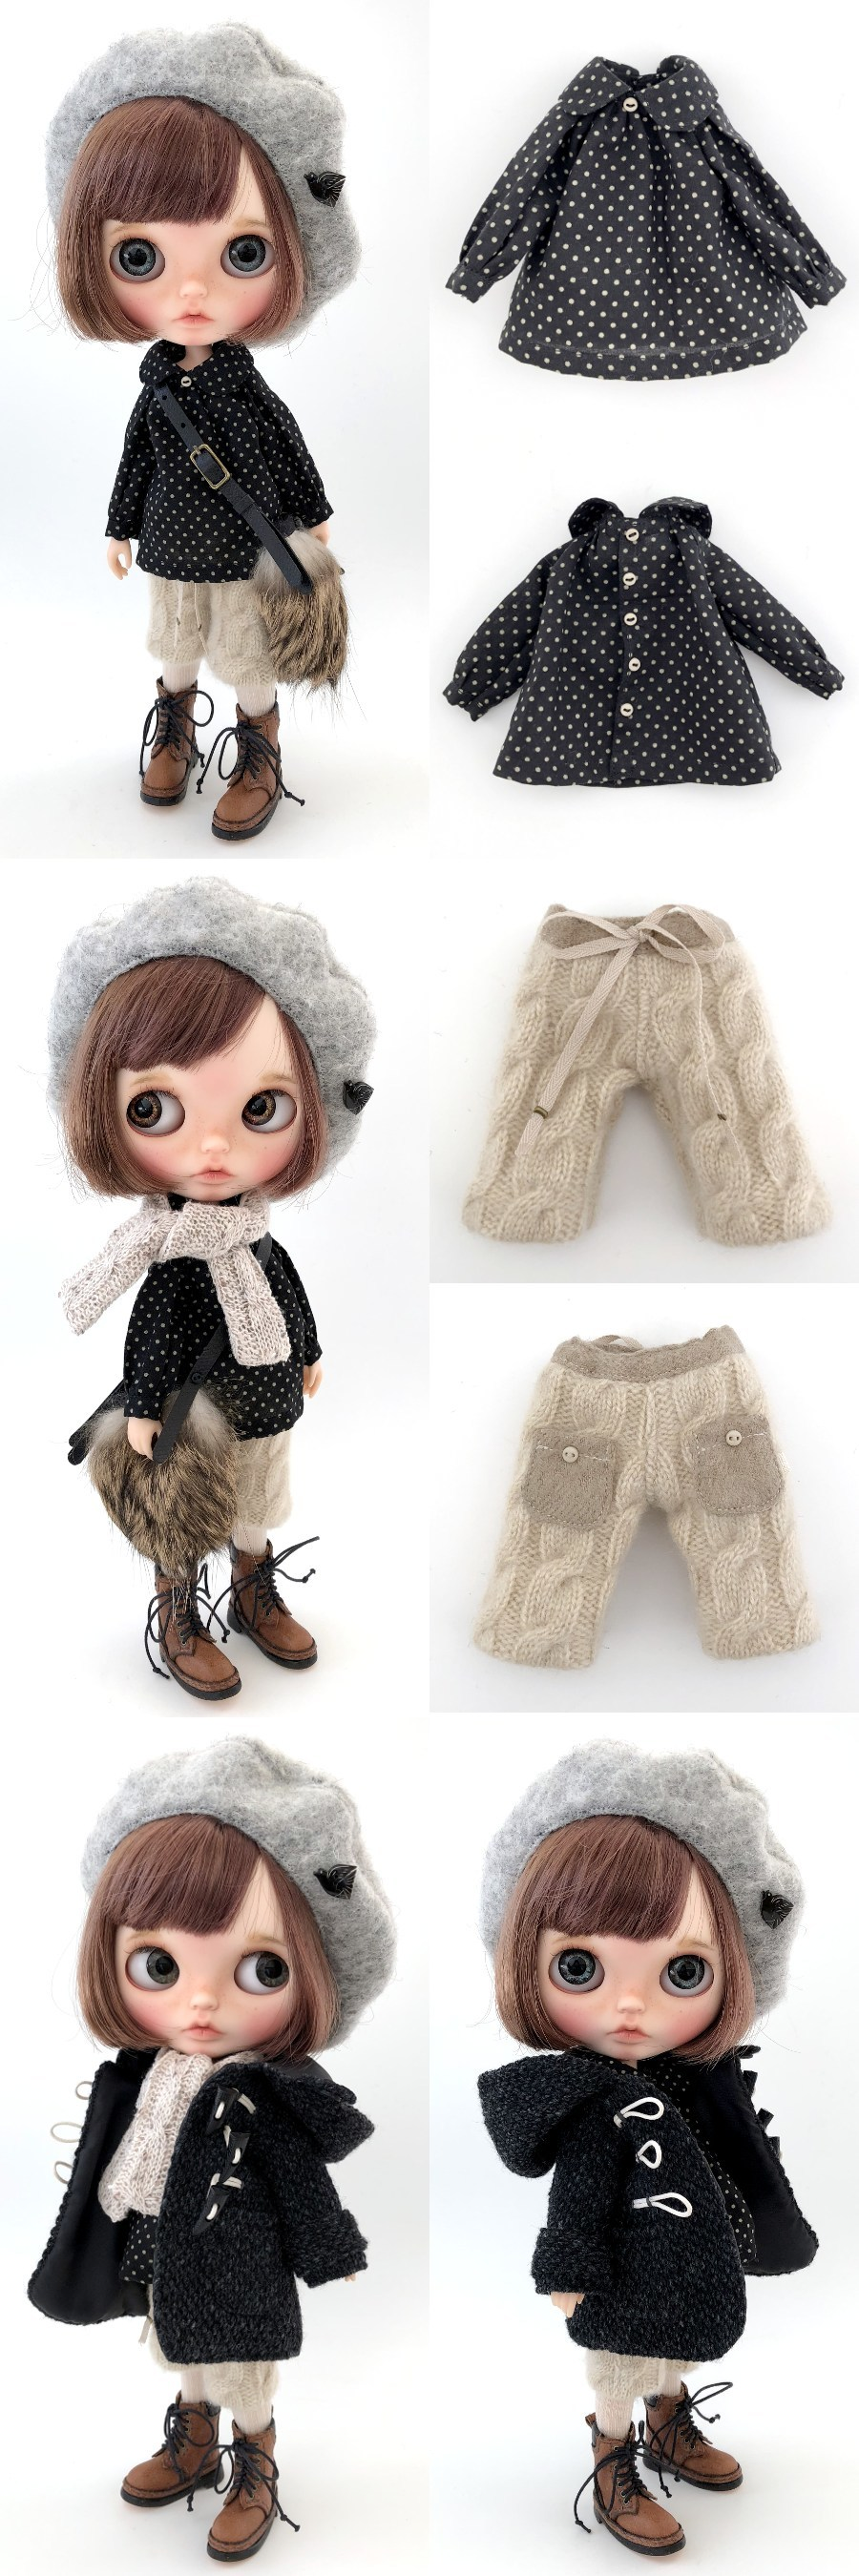 ** Blythe outfit ** Lucalily 579**_d0217189_18342992.jpg